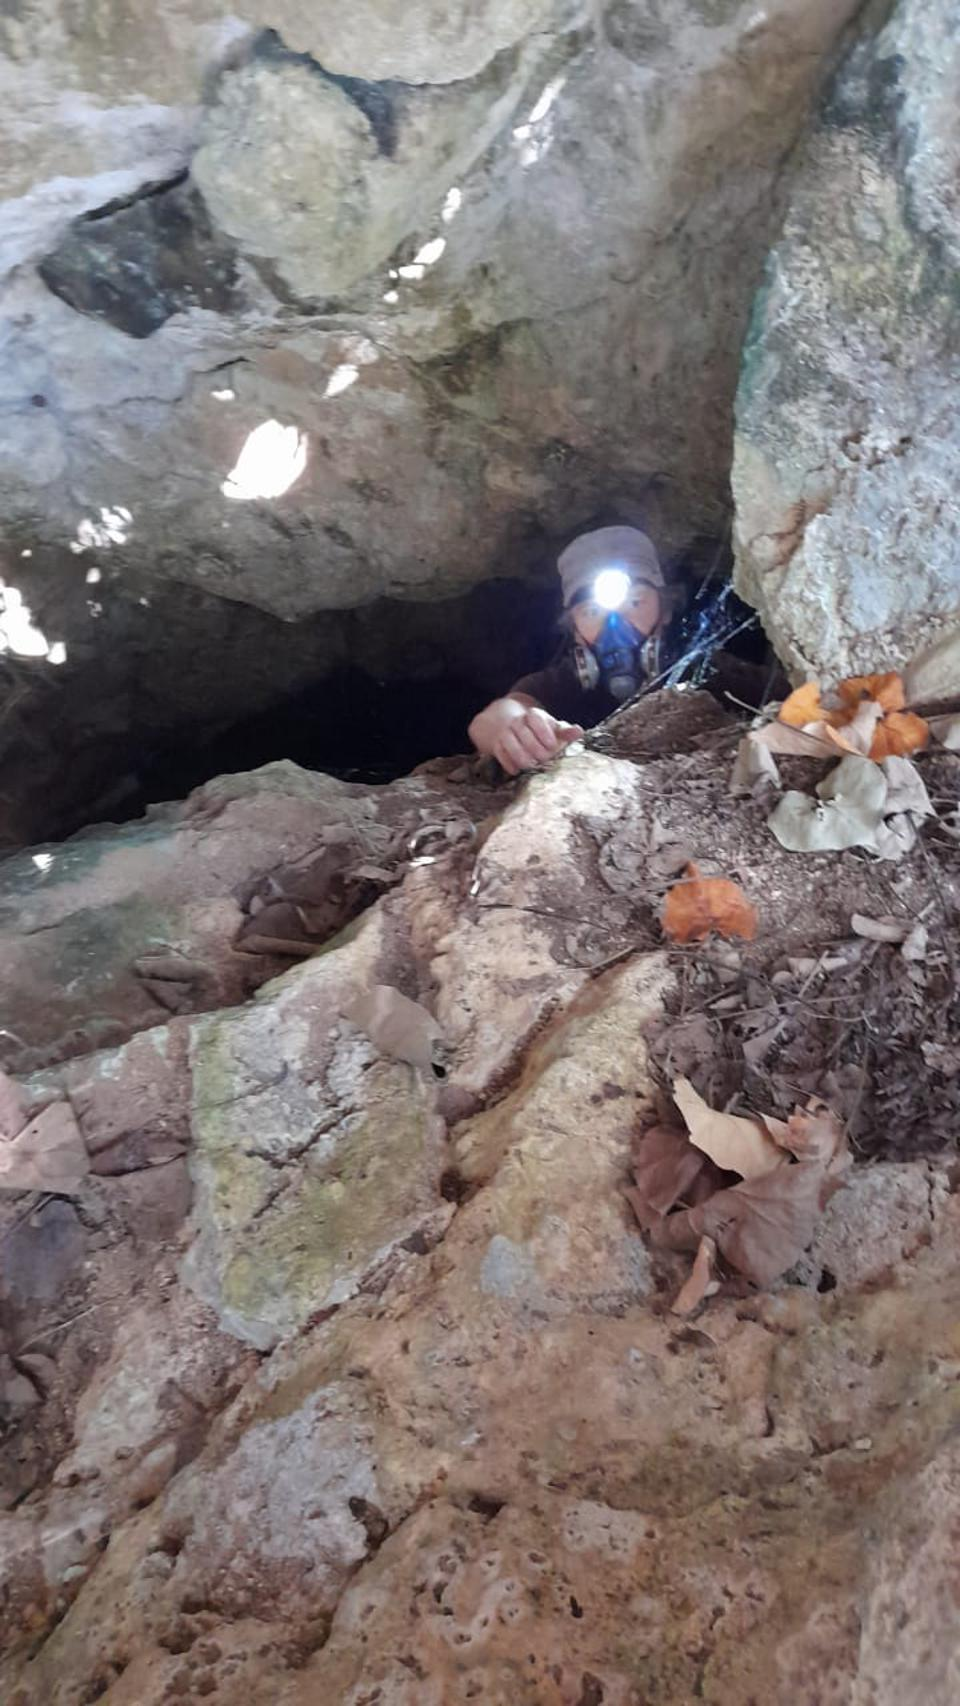 14 Aug 2020: Dr Nick Cole in Ile aux Aigrettes caves looking for the newly discovered Cave Cricket.  The entire population appears to have disappeared since the oil spill, as they were dependent on coastal algae as their food.